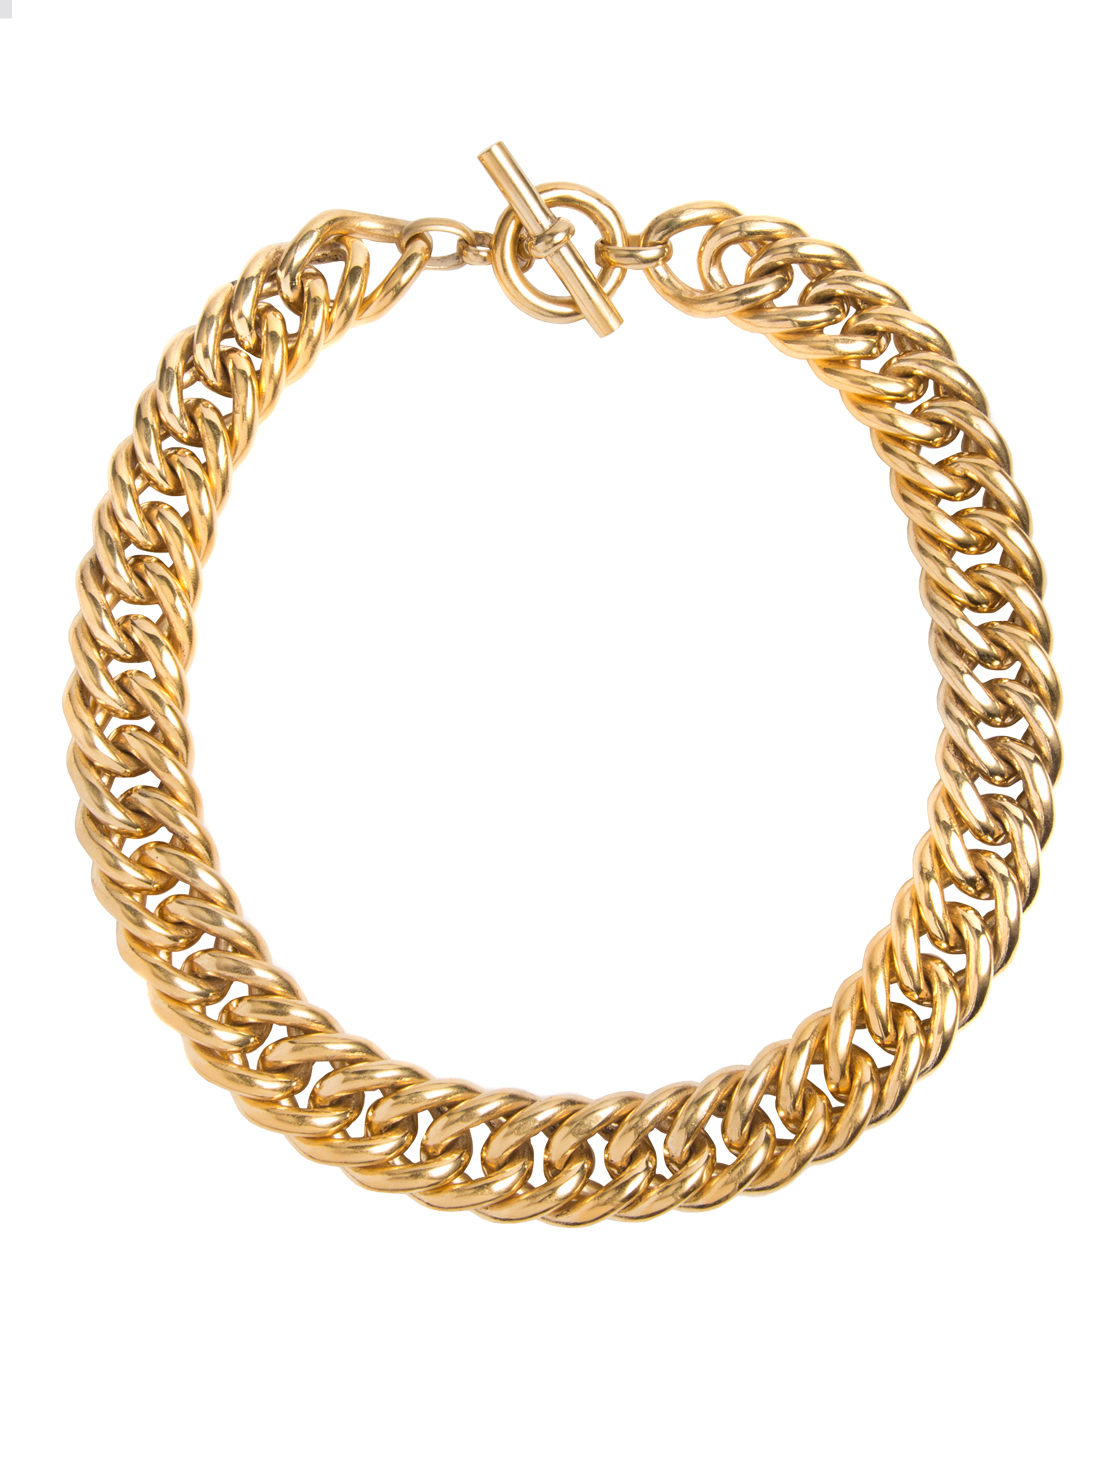 Large Gold Curb Chain Necklace – Tilly Sveaas Jewellery Within Most Recent Curb Chain Necklaces (View 8 of 25)